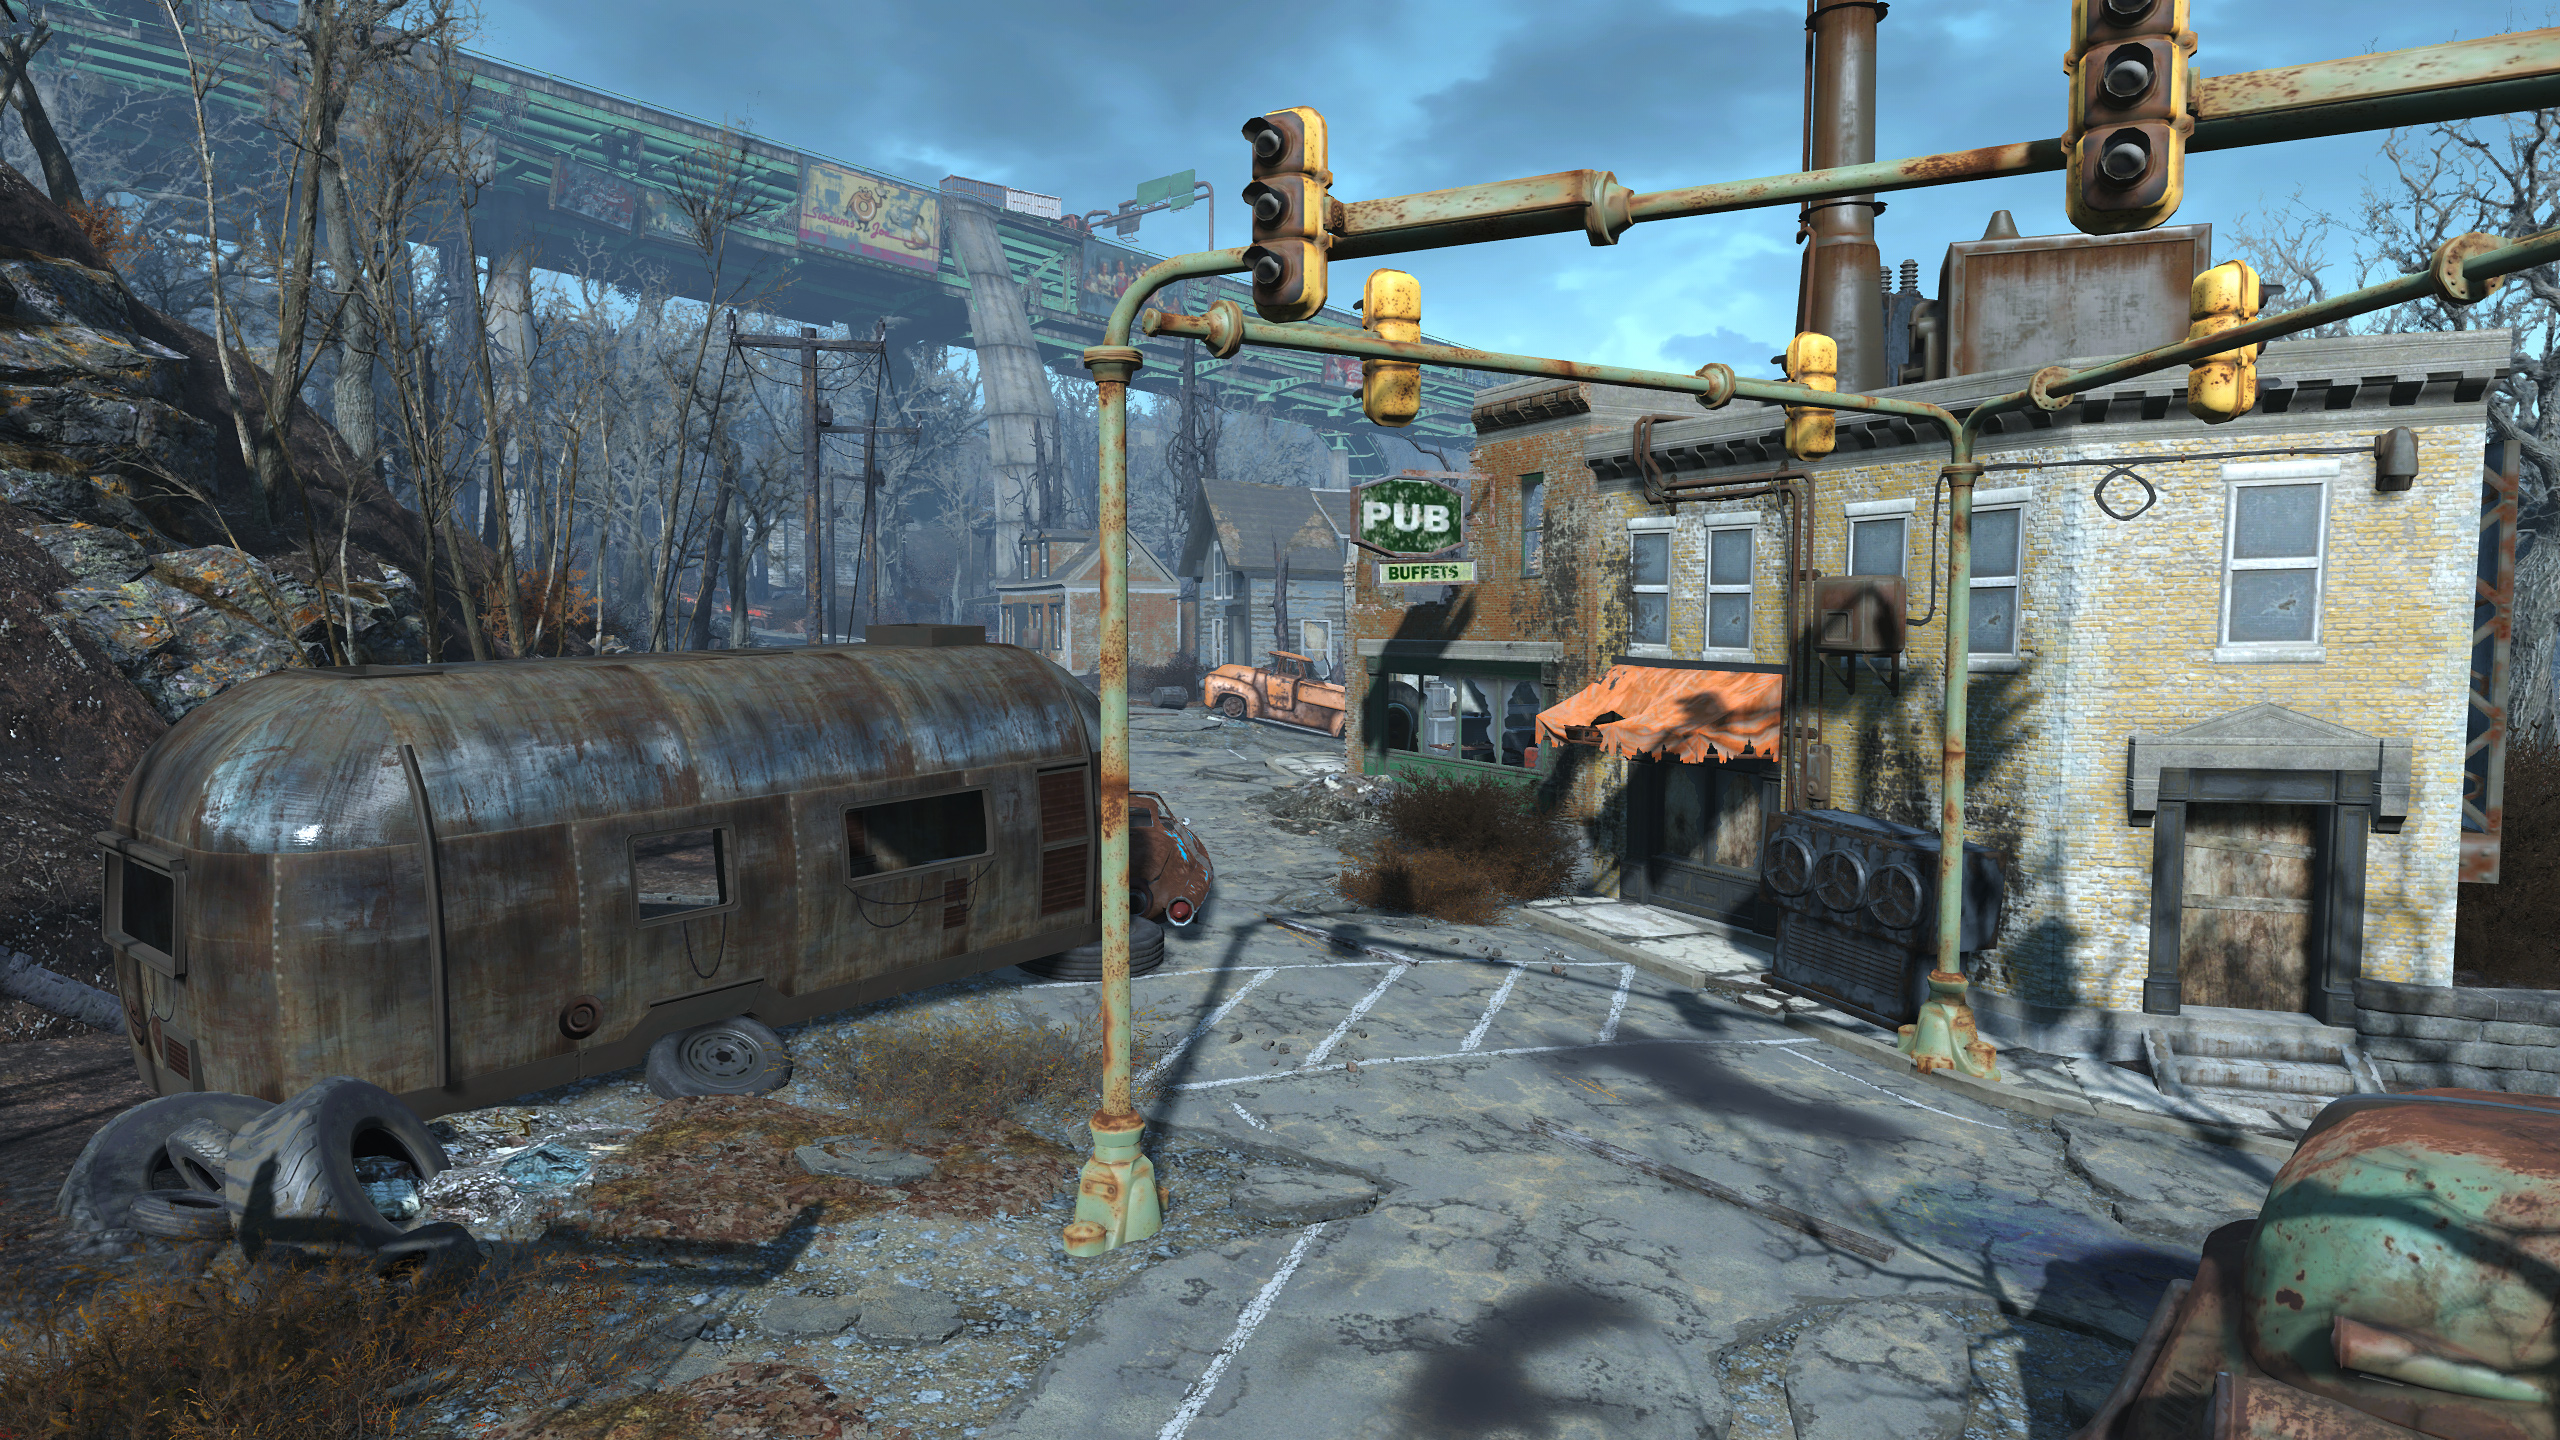 FO4 Forest Grove marsh (Pub and Buffet)